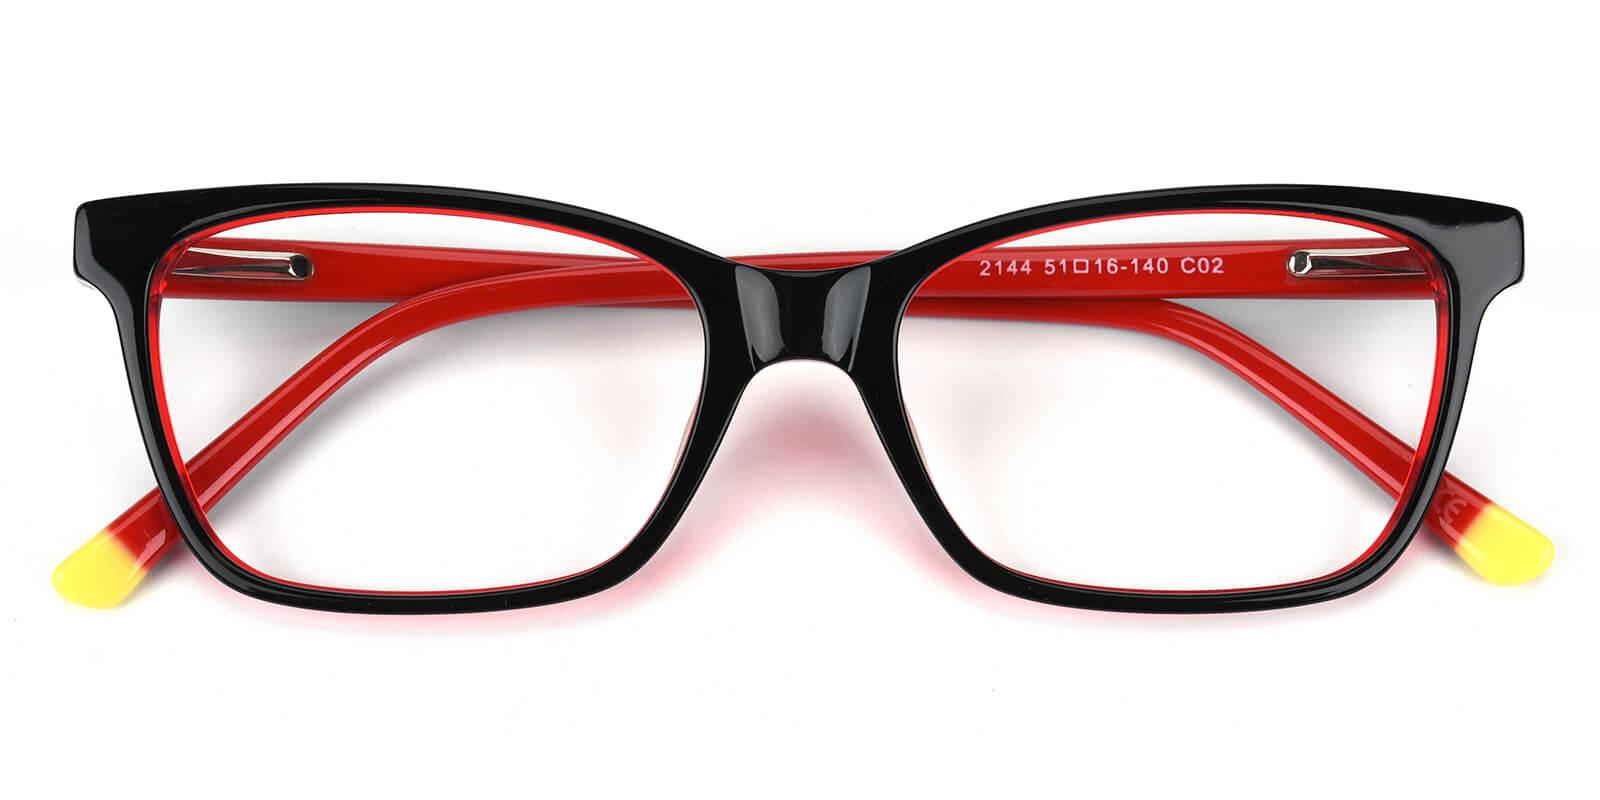 Waferay-Red-Cat-Acetate-Eyeglasses-detail